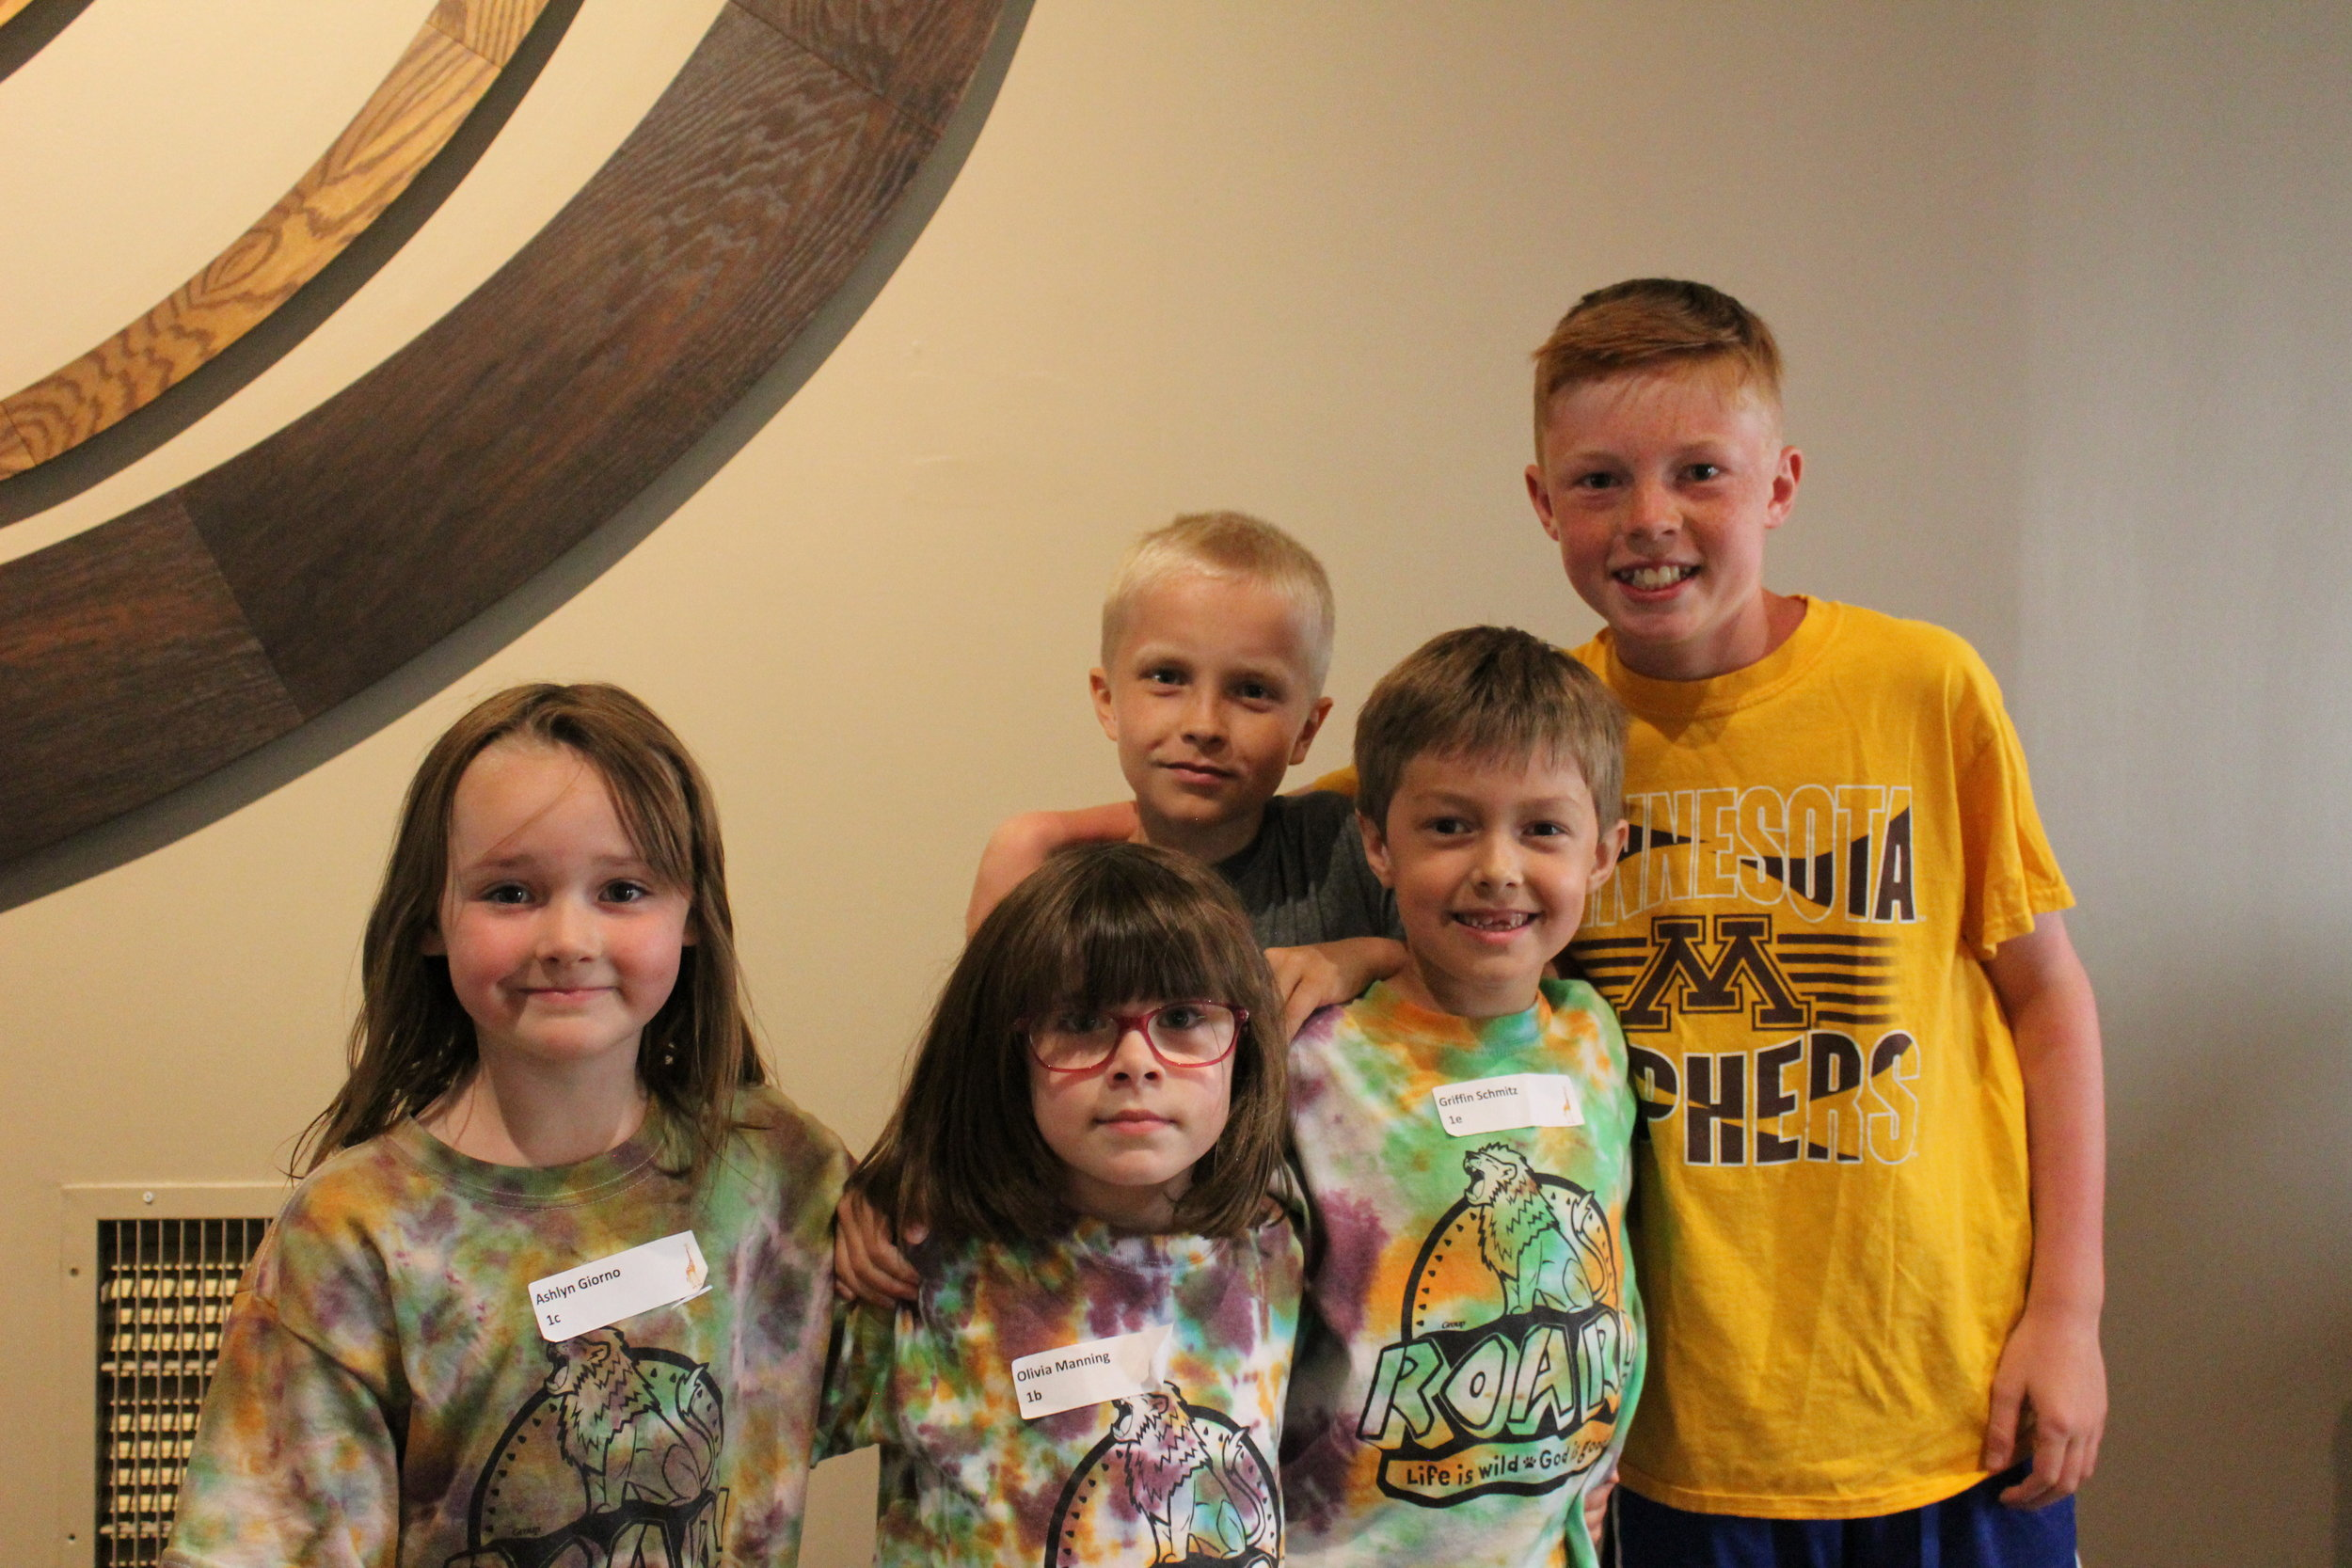 We are grateful for the friends made at VBS!